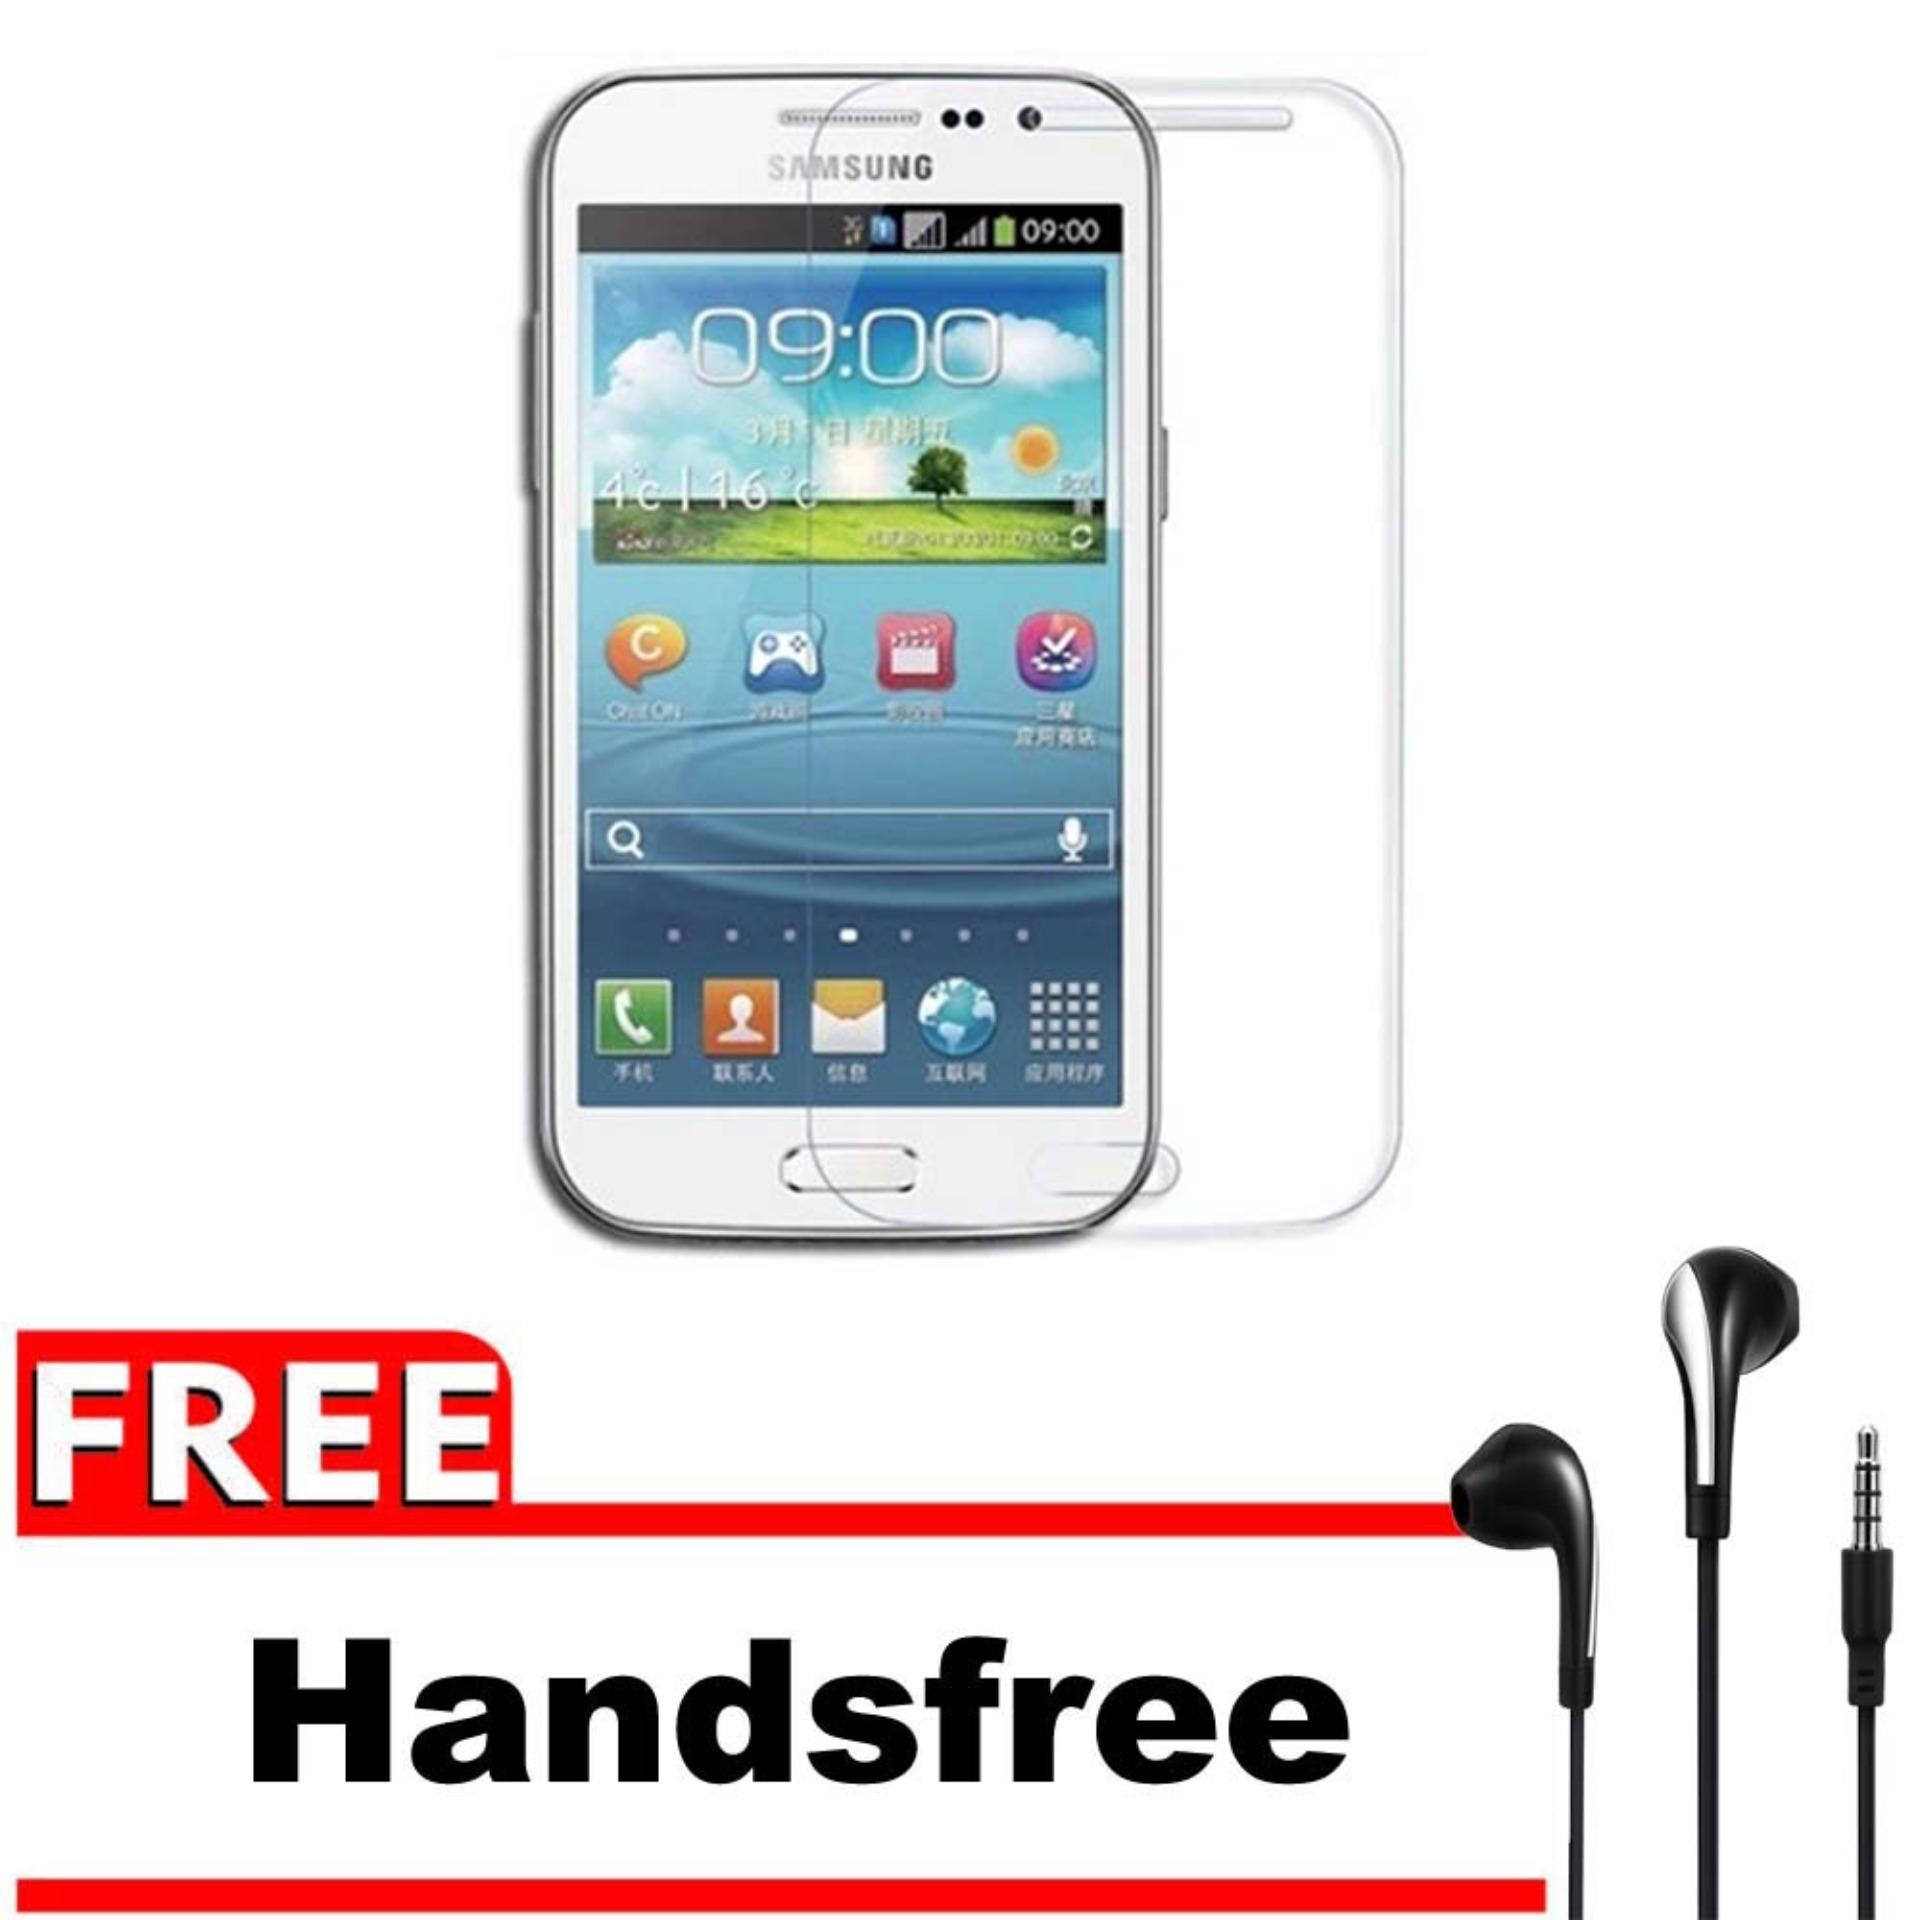 Vn Samsung Galaxy Win / Grand Quattro / I8550 / I8552 / Duos Tempered Glass 9H Screen Protector 0.32mm + Gratis Free Handsfree Earphone Headset Universal - Bening Transparan